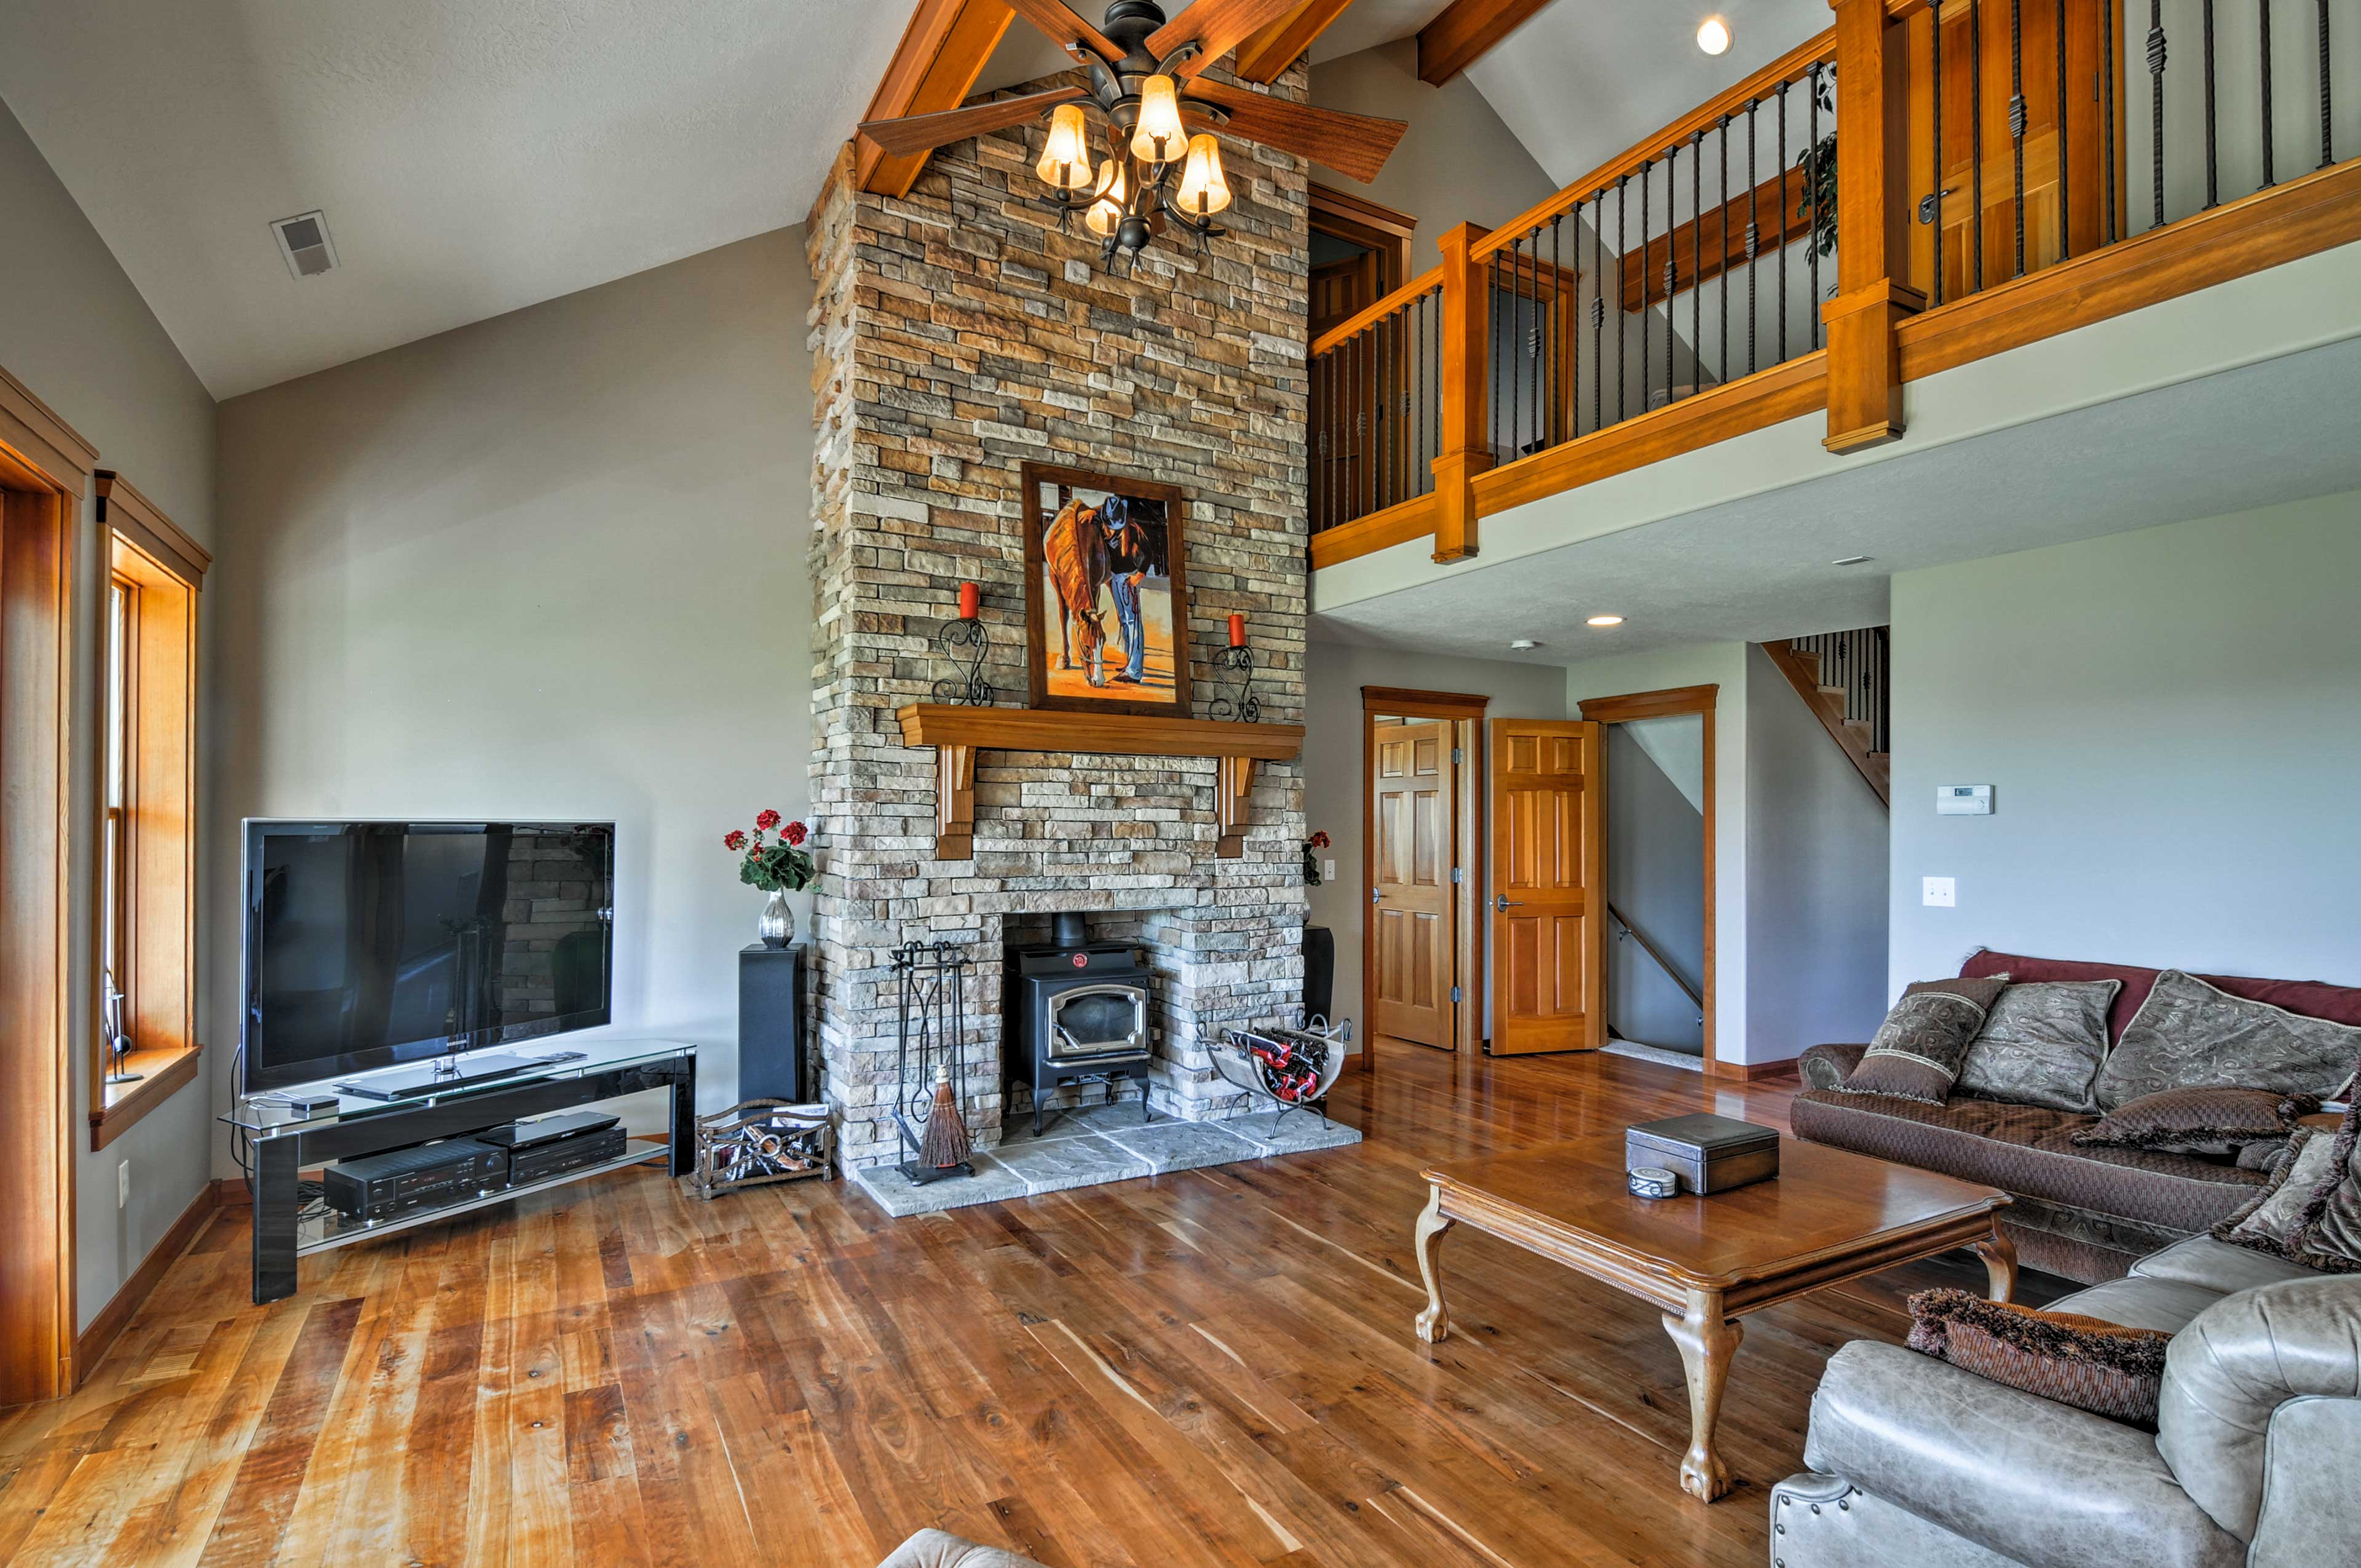 The vacation rental ranch house boasts 5,600 square feet of living space.